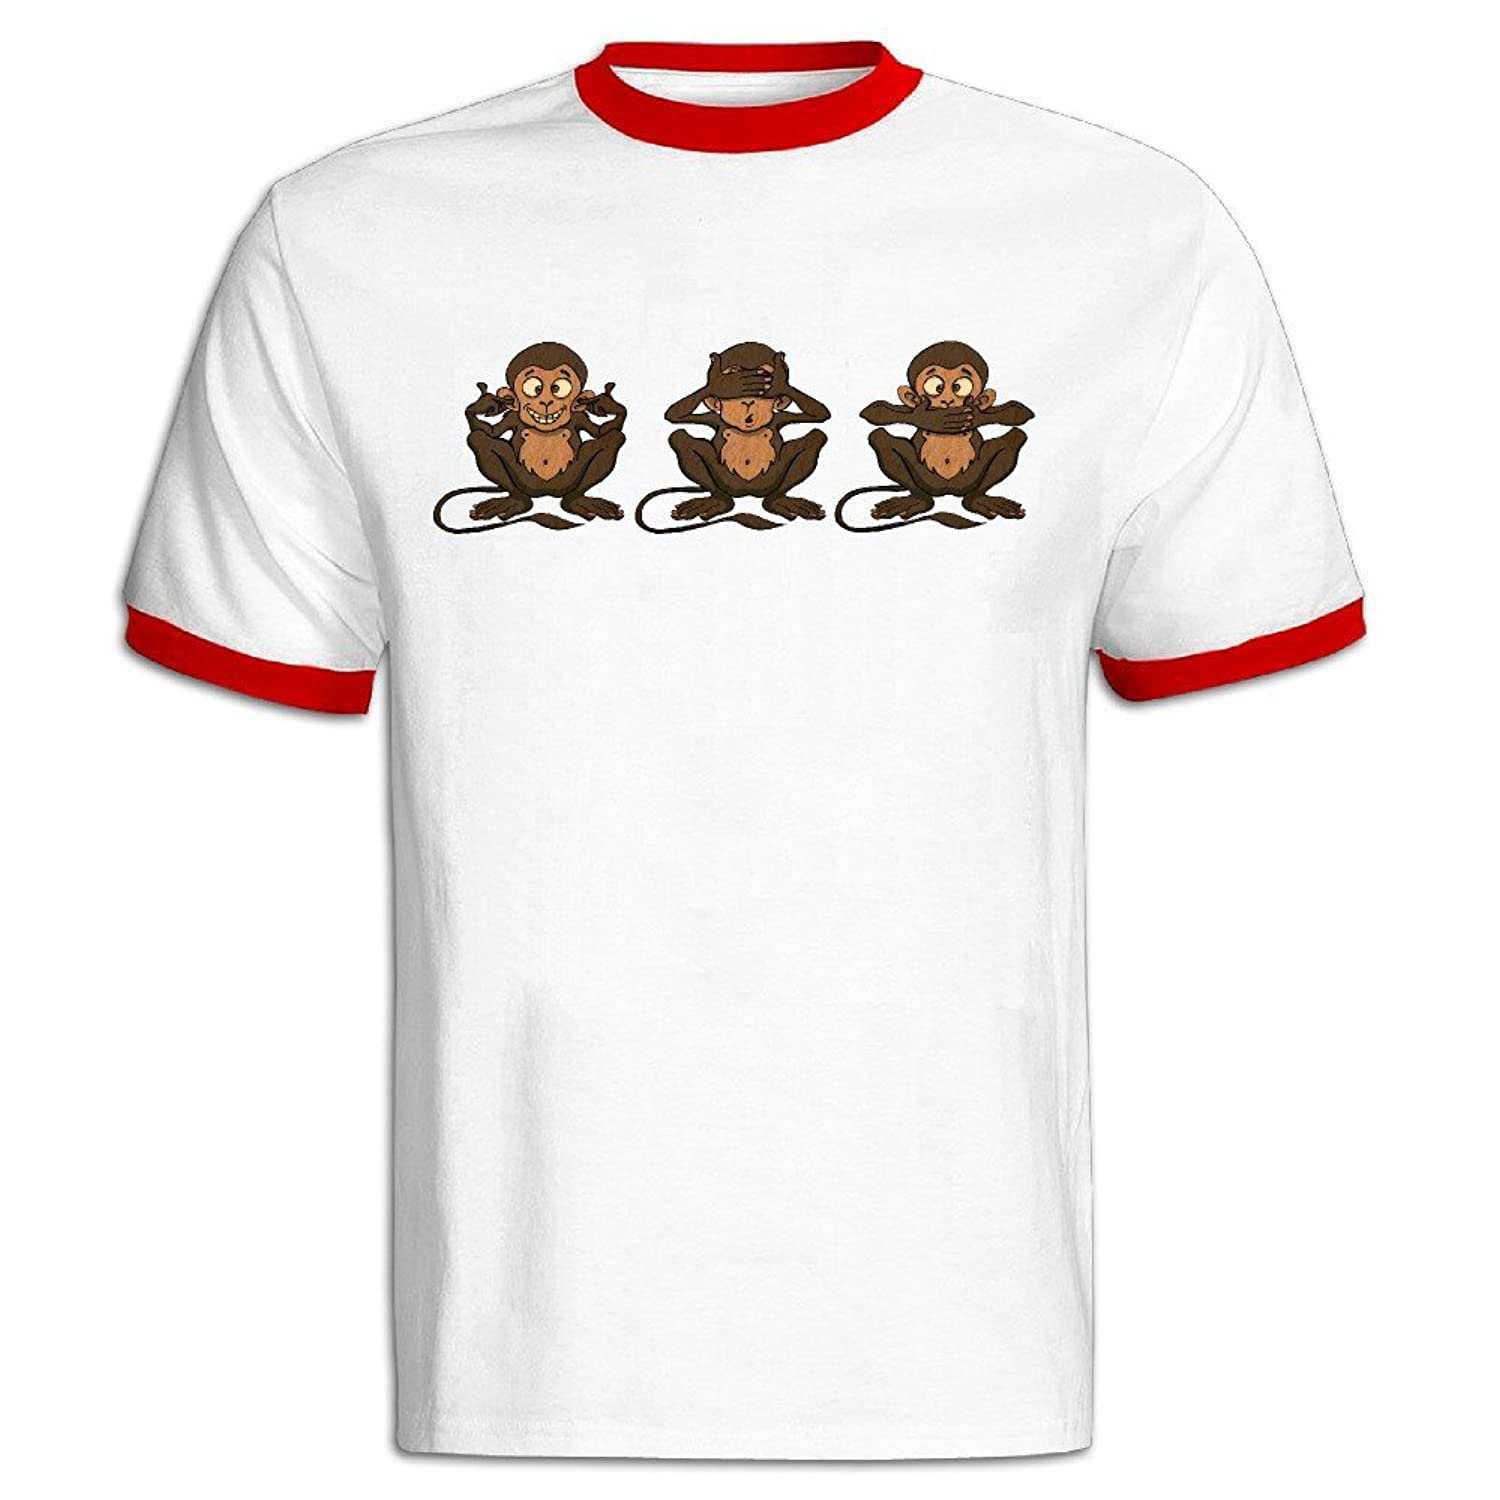 NUBIA Emoji Monkey Making Face Contrast Color Vintage Tshirt For Mens Black